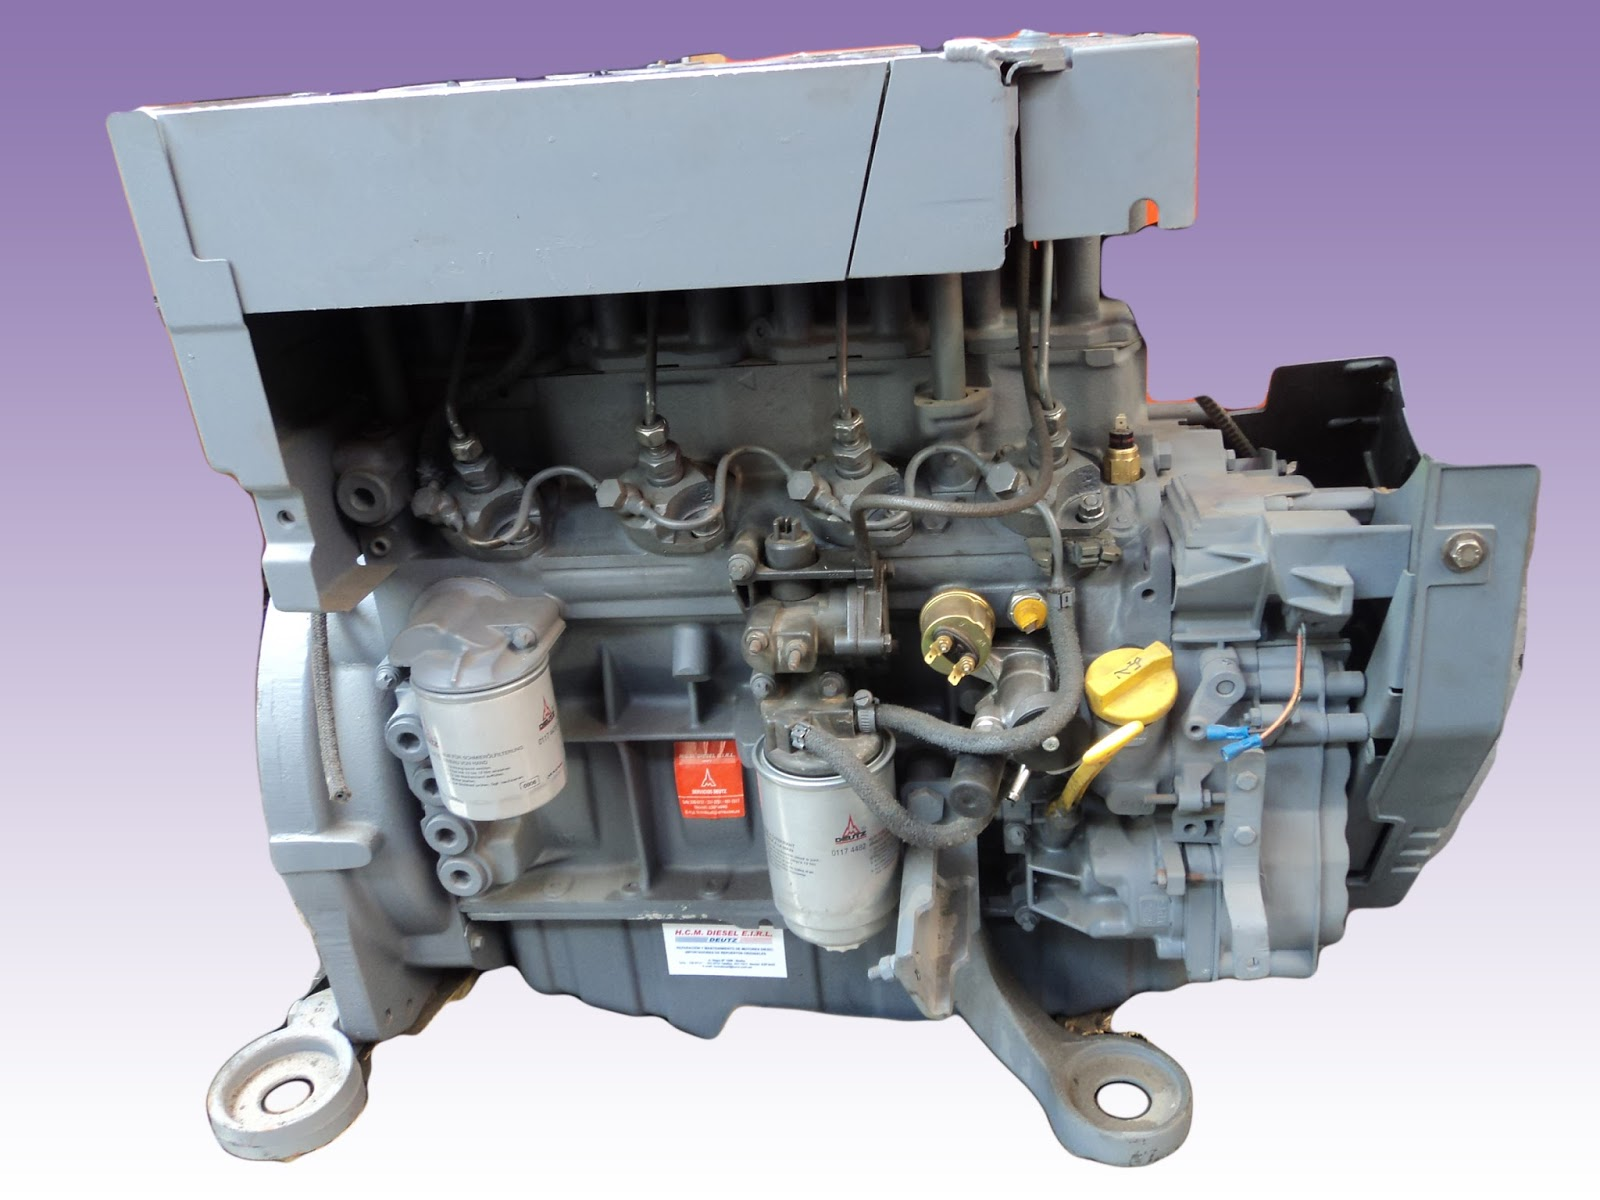 medium resolution of engine deutz workshop manual report deutz o m manual with this manual del it will show you how to distinguish any problem from an oil change to a